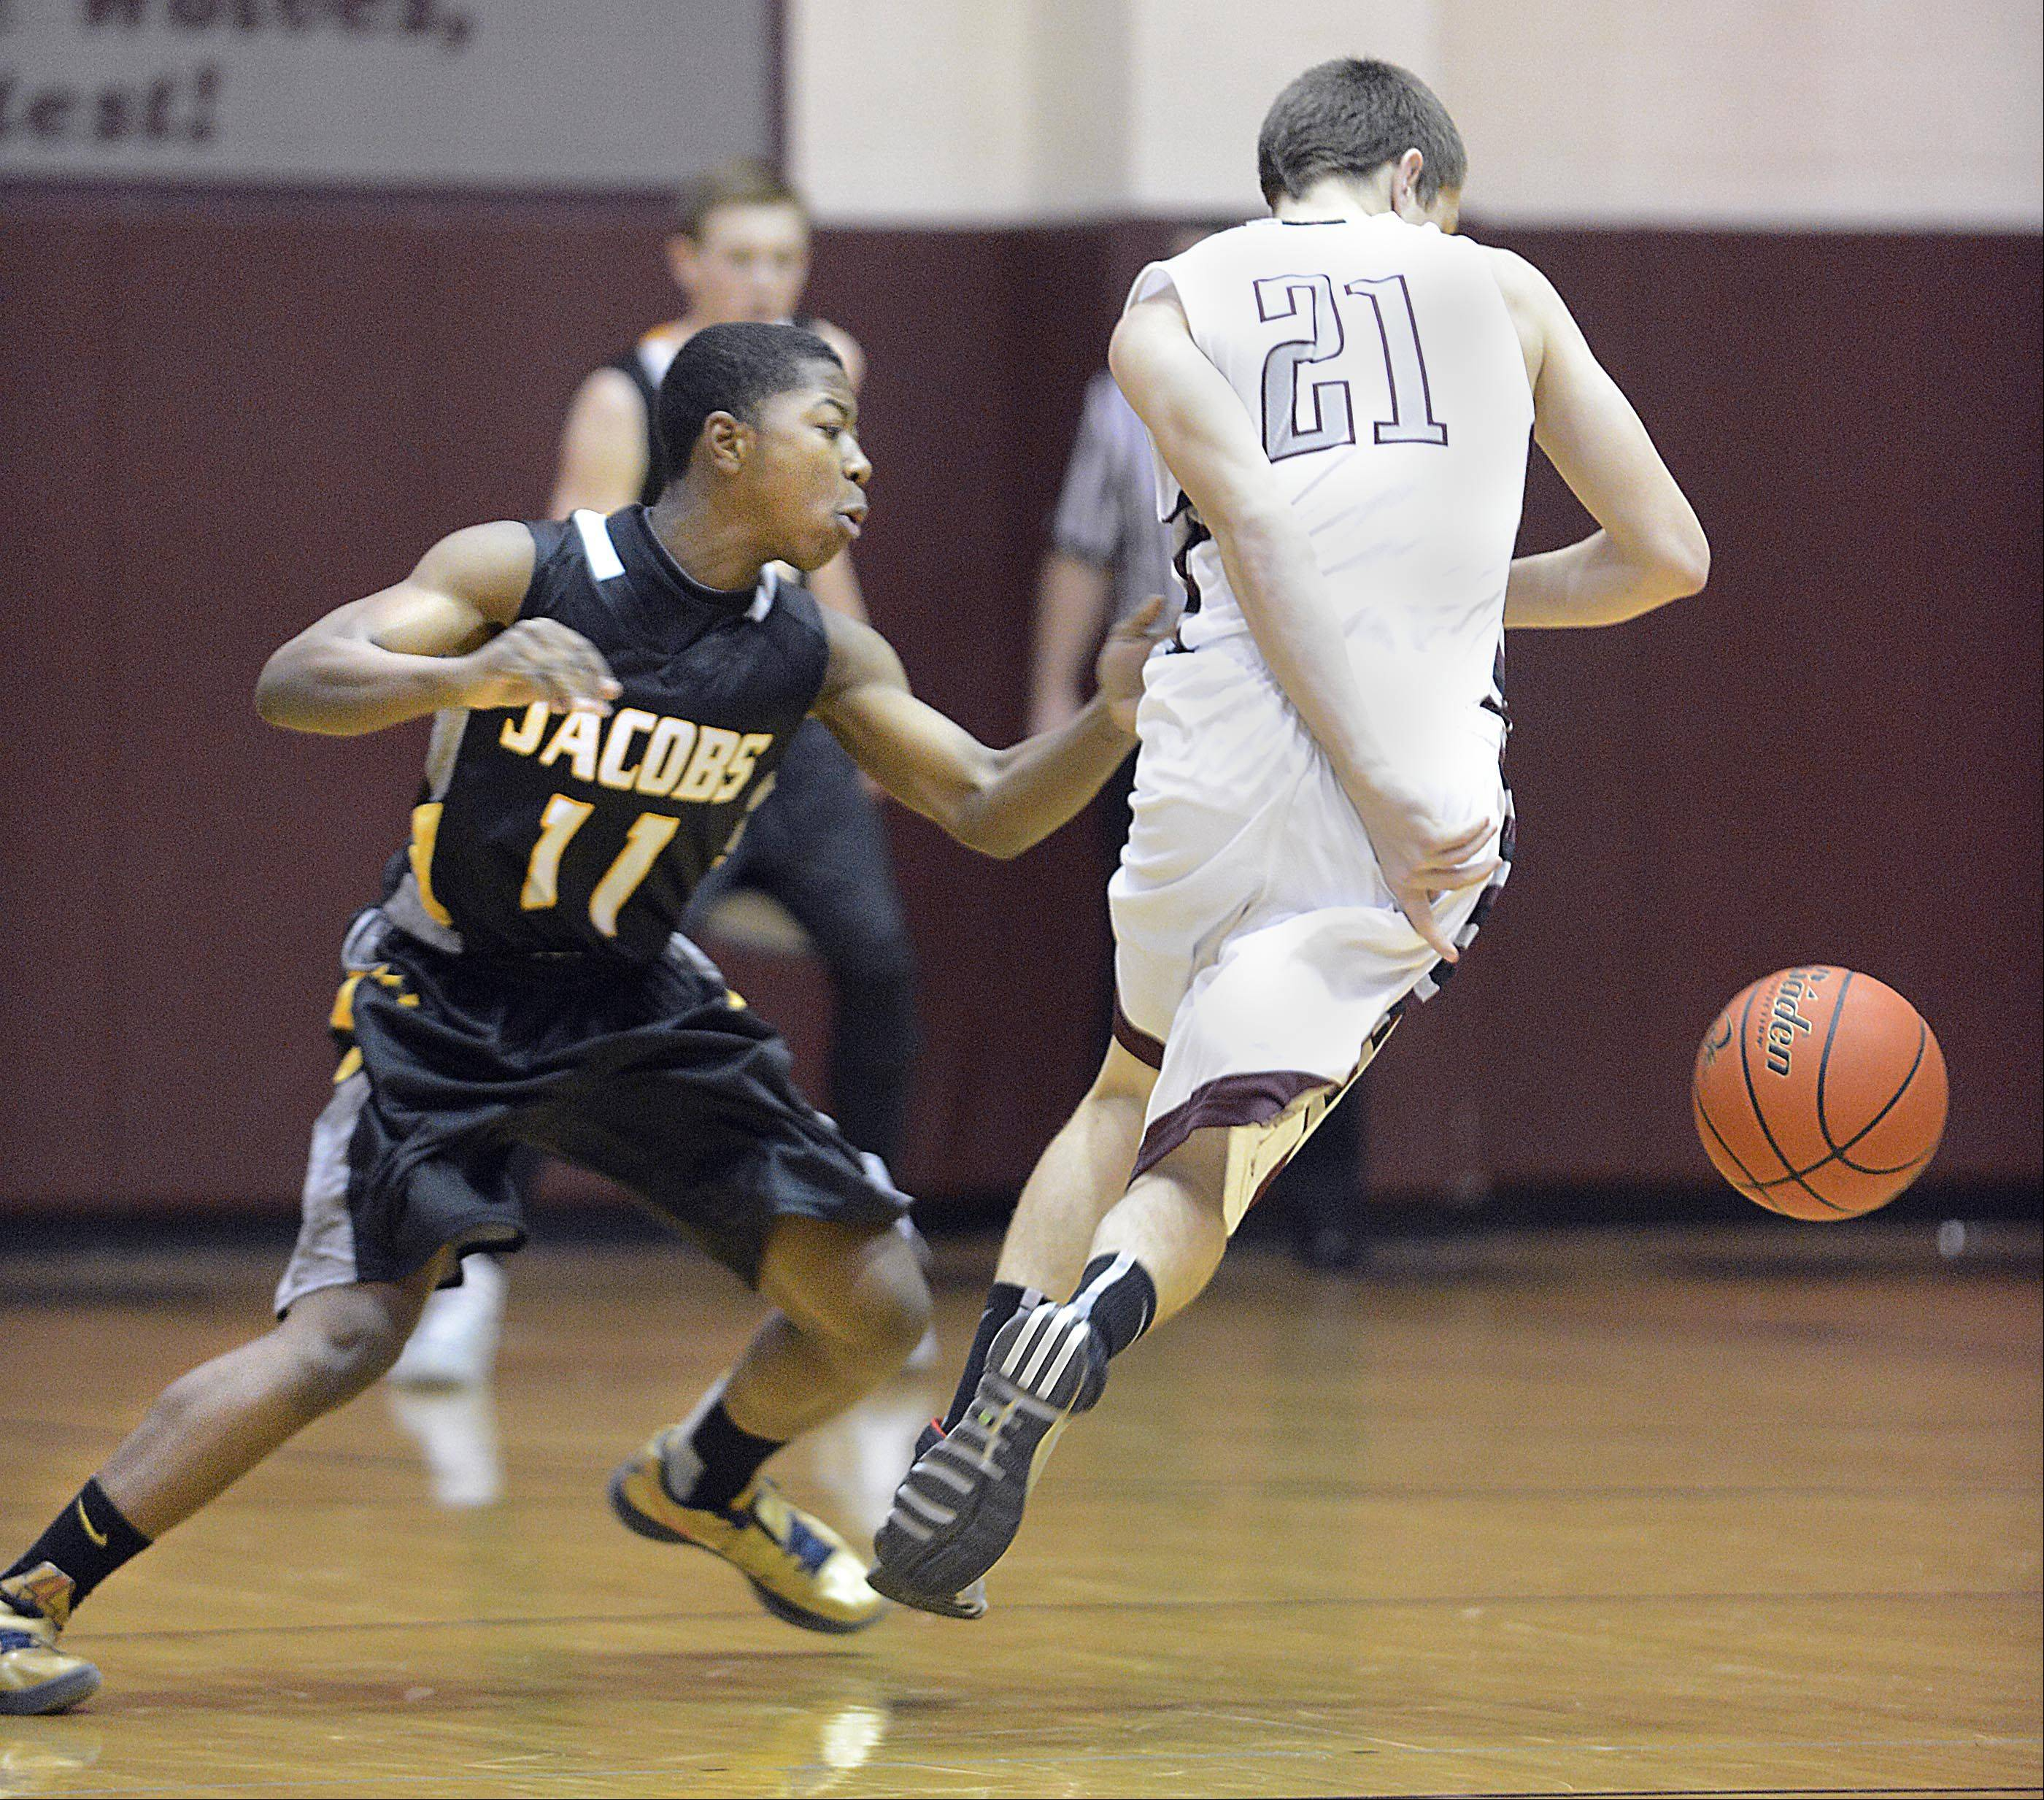 Prairie Ridge's Matt Perhats dribbles around Jacobs' Mike Canady Tuesday in Crystal Lake.